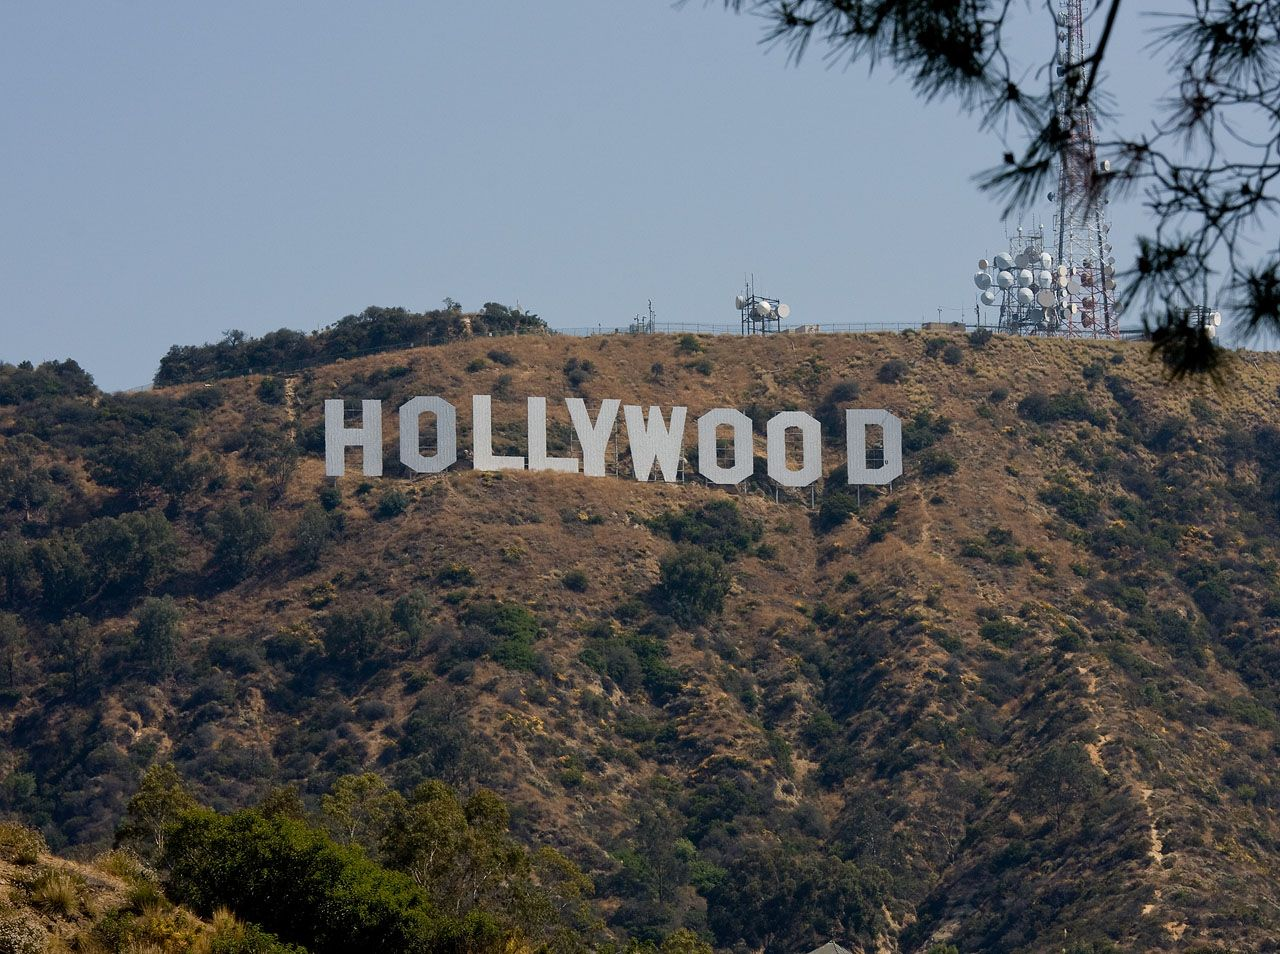 15 best images about Famous landmarks in usa on Pinterest | Statue ...